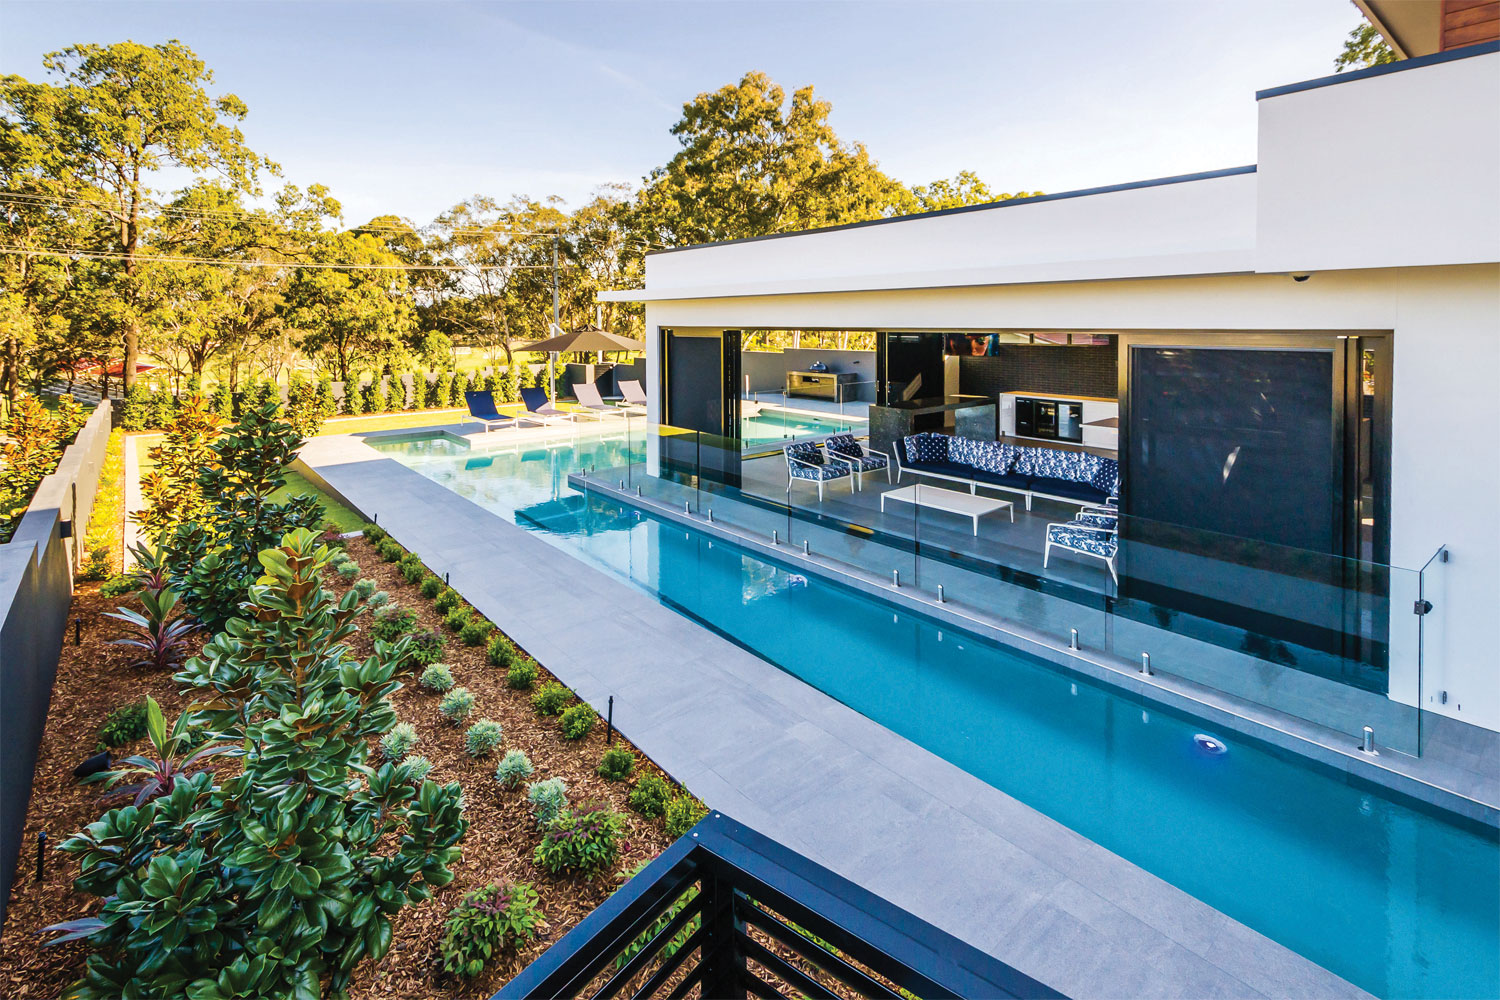 Grand Designs Australia: Living smart - inside the smart home